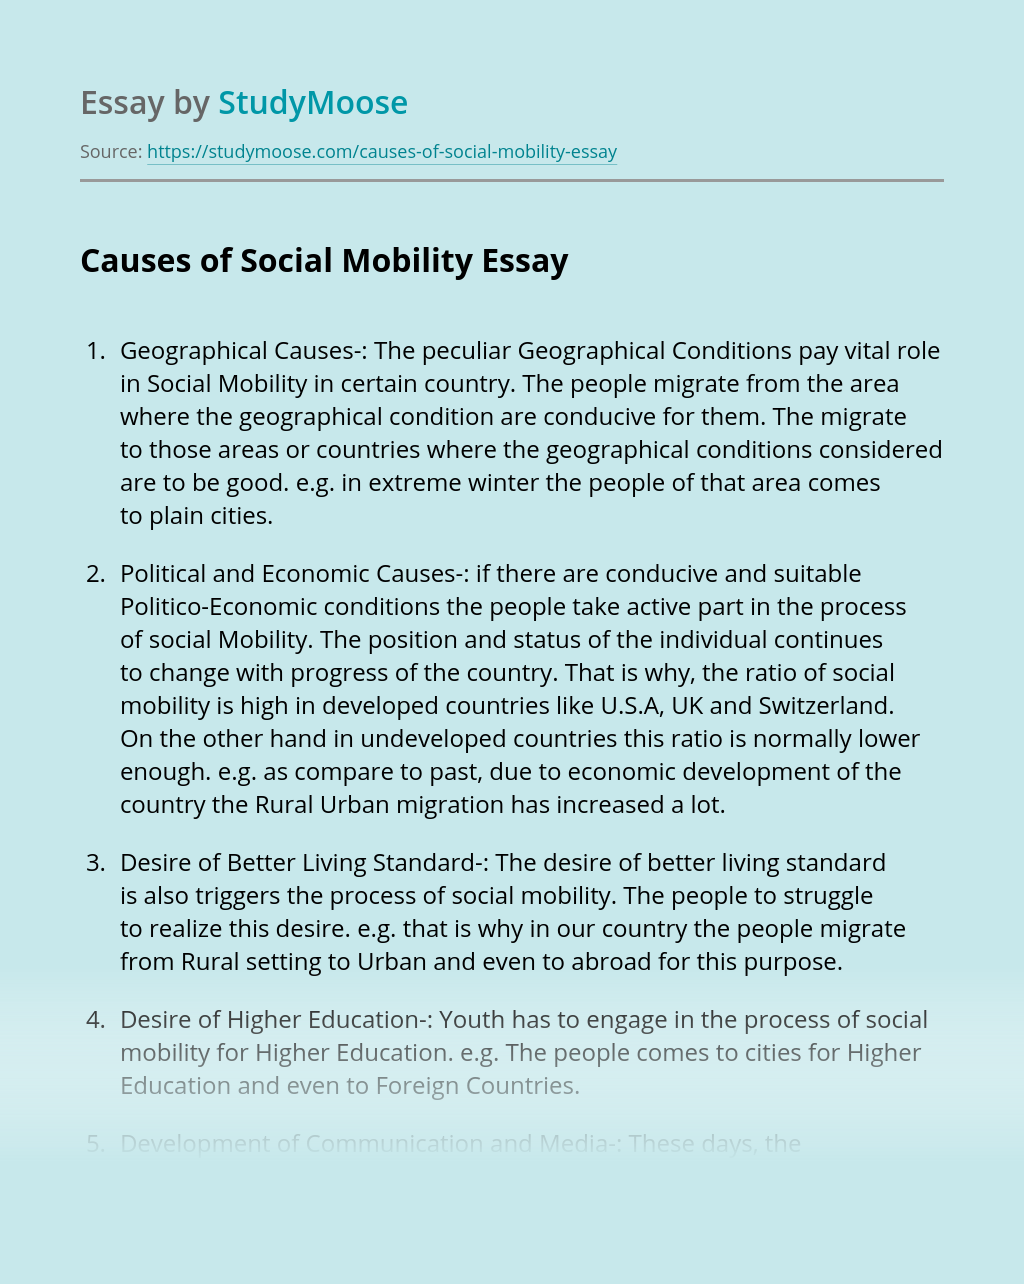 Causes of Social Mobility